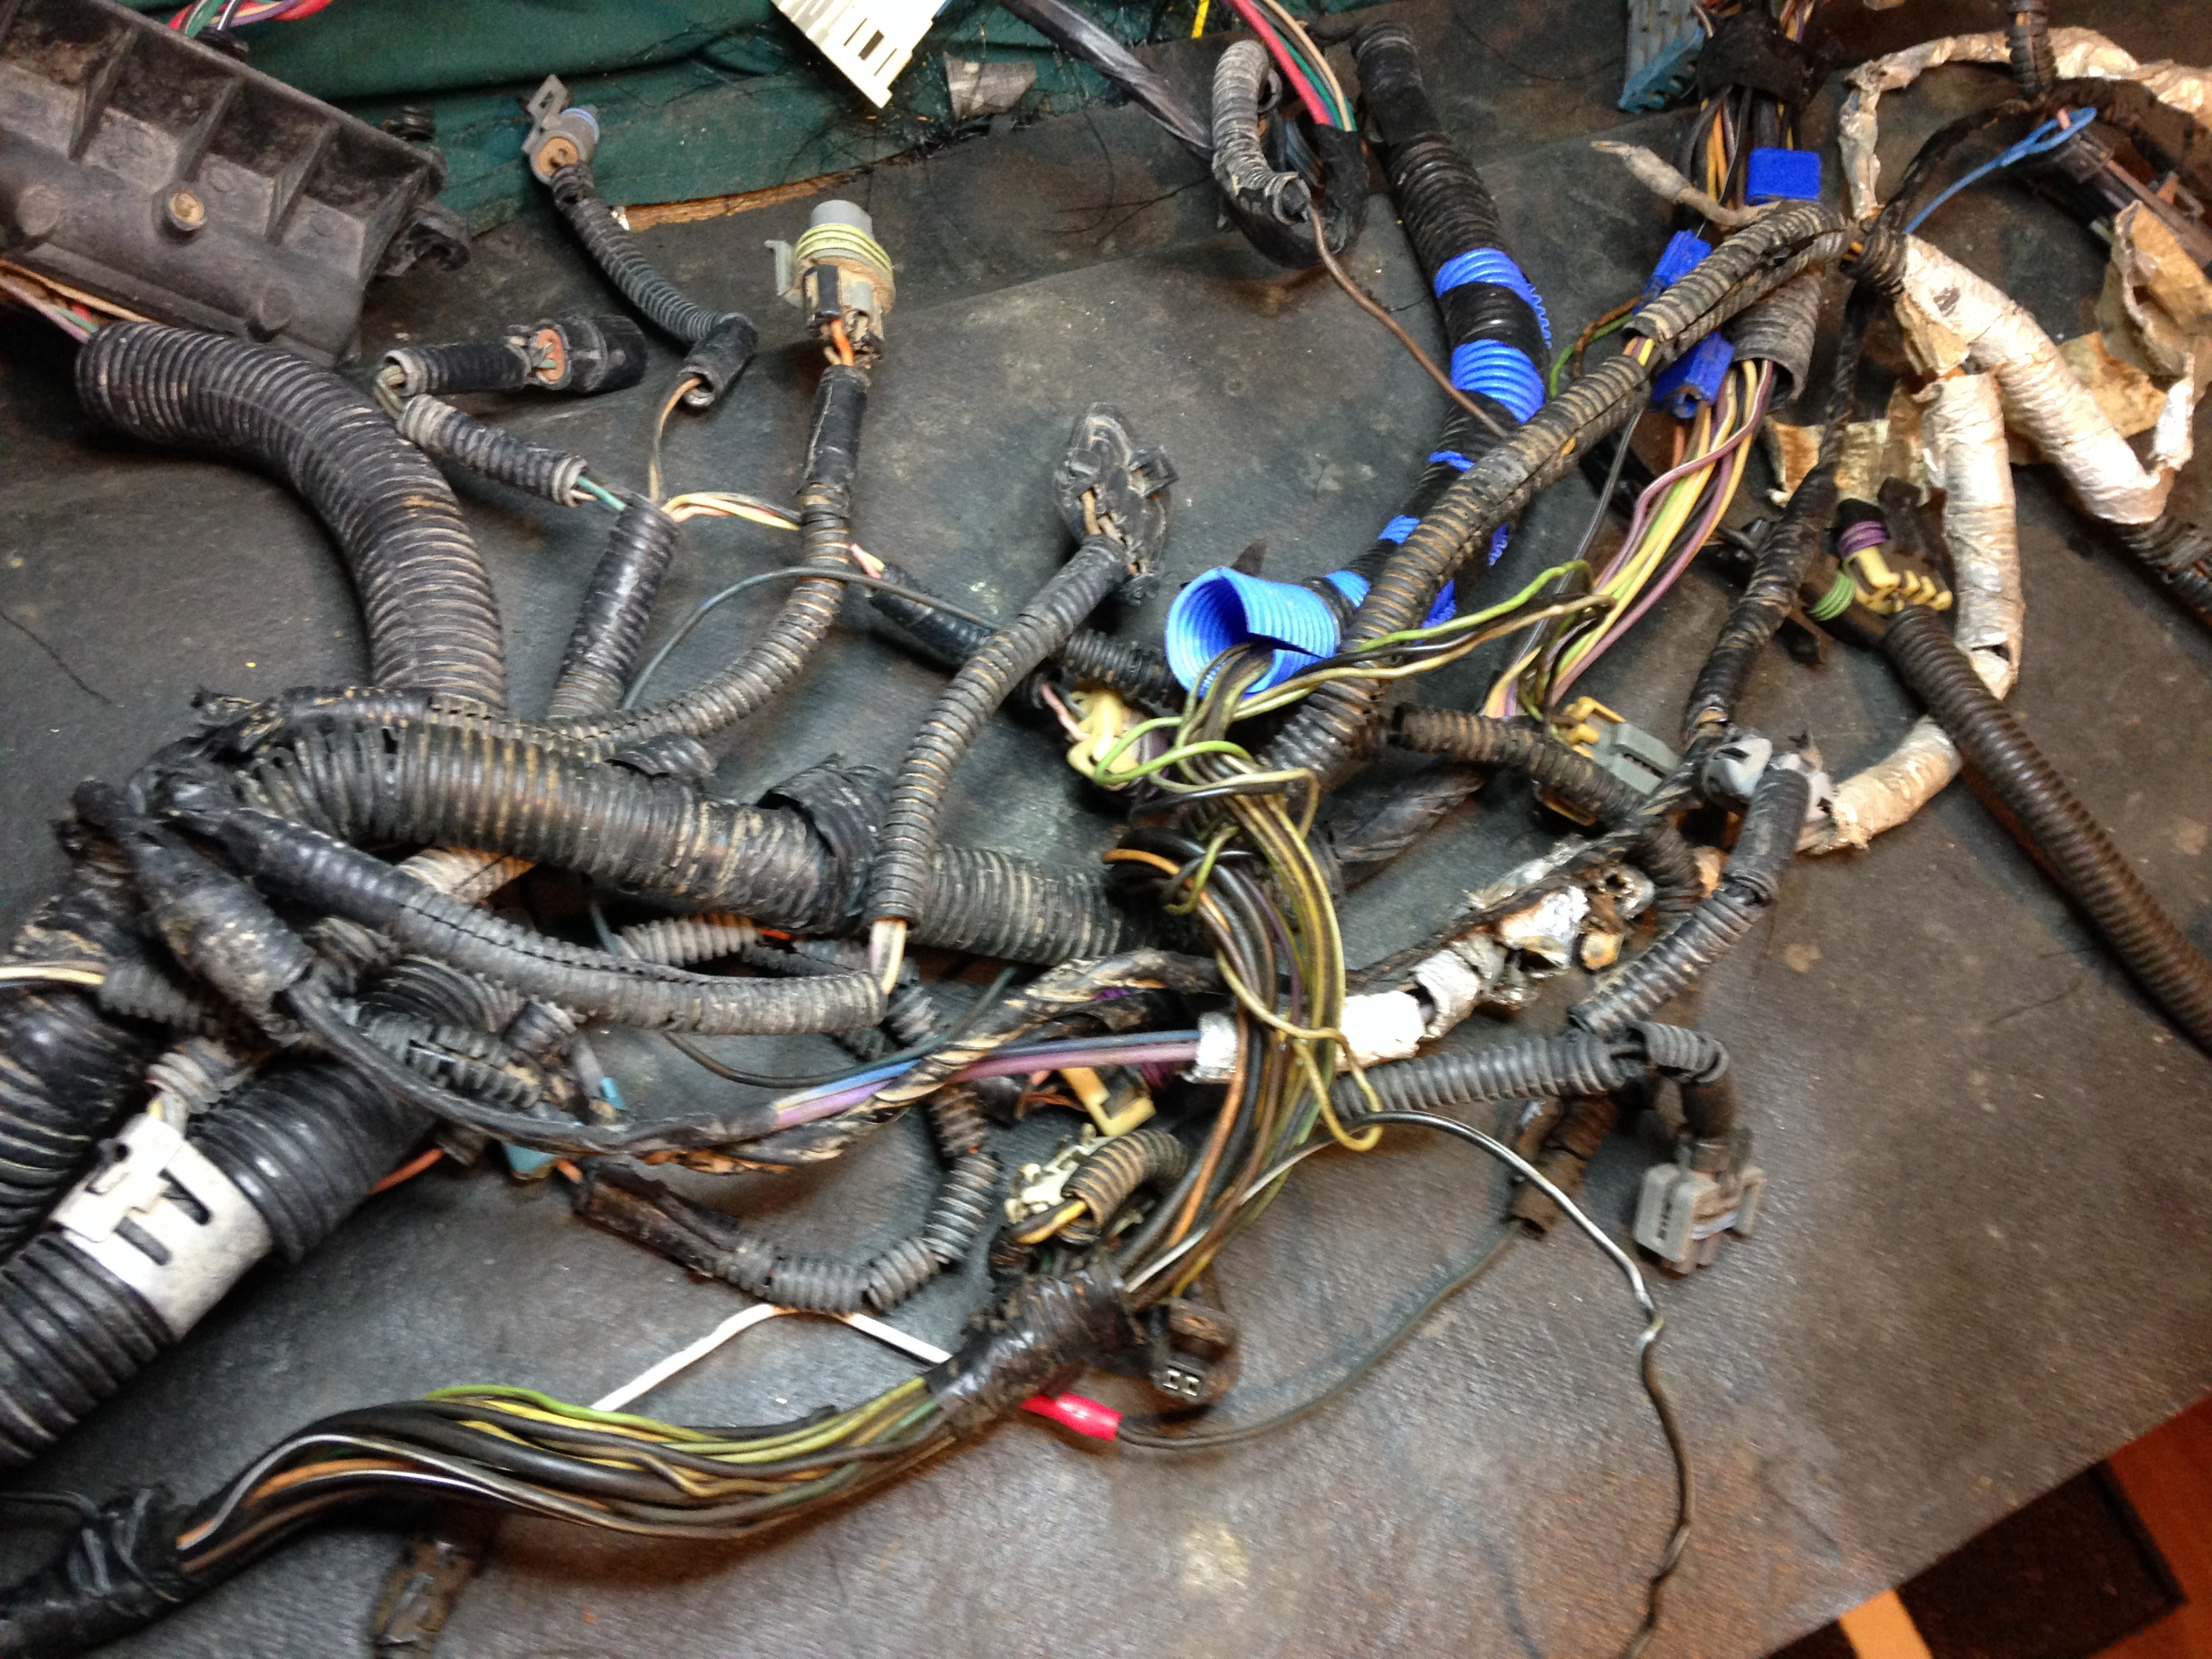 Wiring Harness That Has Been Cut And Hacked Up